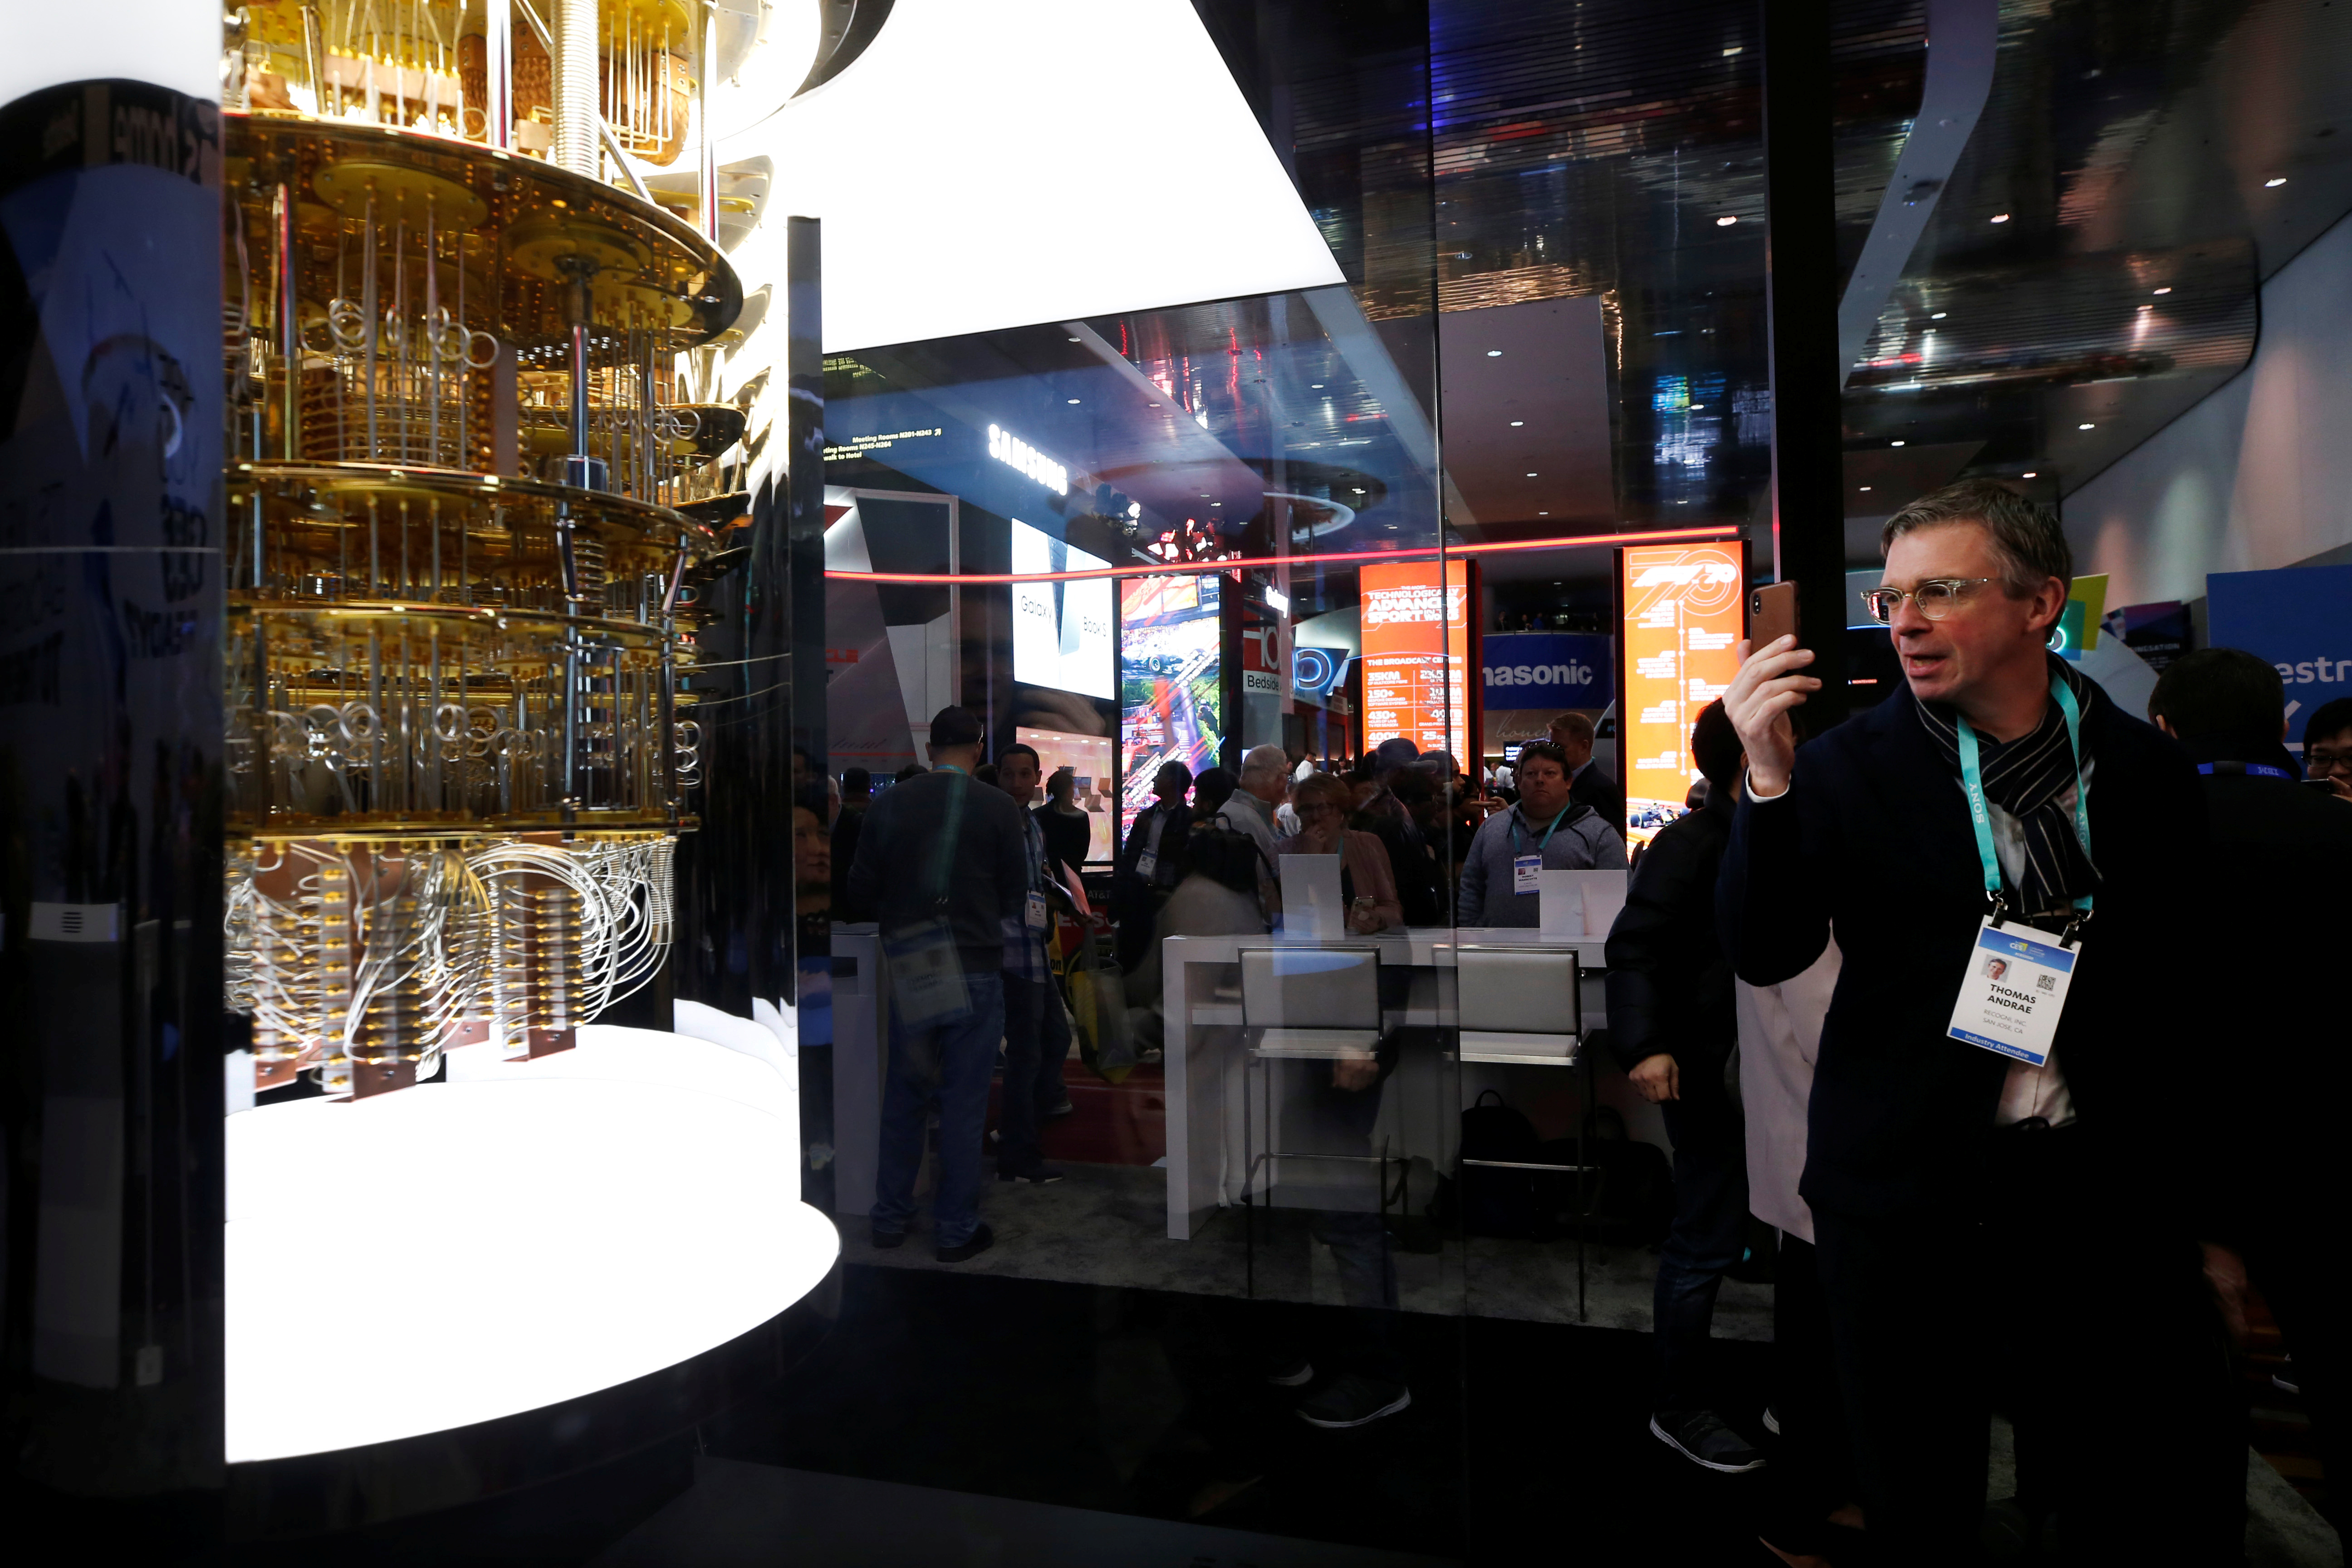 A man takes a photo of a model of the IBM Q System One quantum computer during the 2020 CES in Las Vegas, Nevada, U.S. January 7, 2020. REUTERS/Steve Marcus